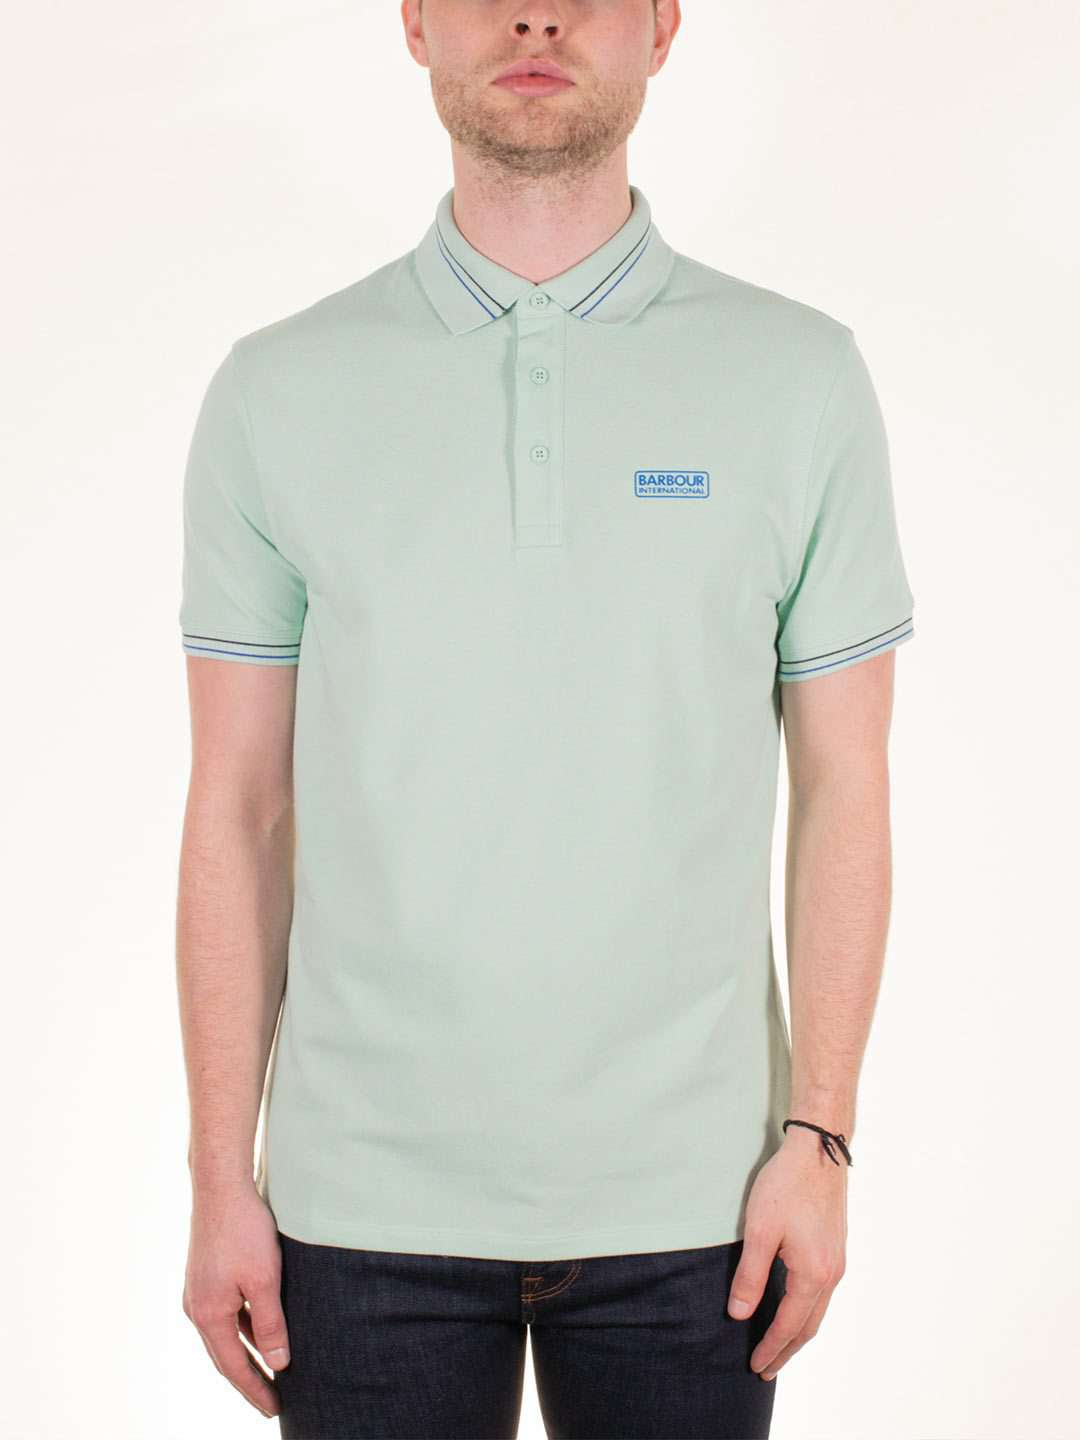 BARBOUR INTL. Switch Tipped Polo - Revolver Menswear Bawtry